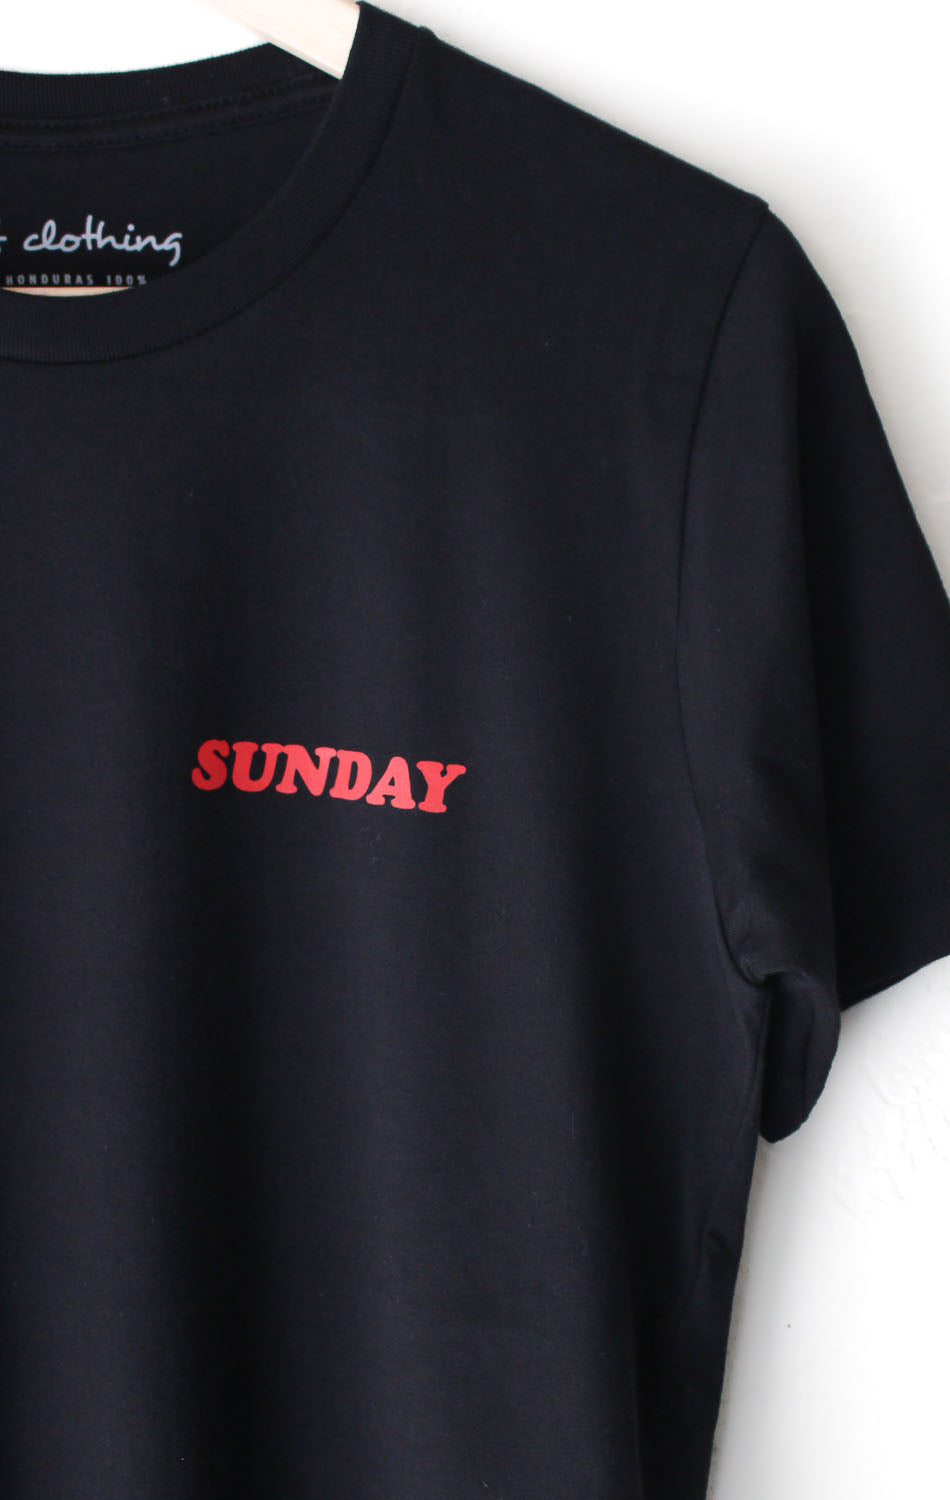 NYCT Clothing Sunday Tee - Black